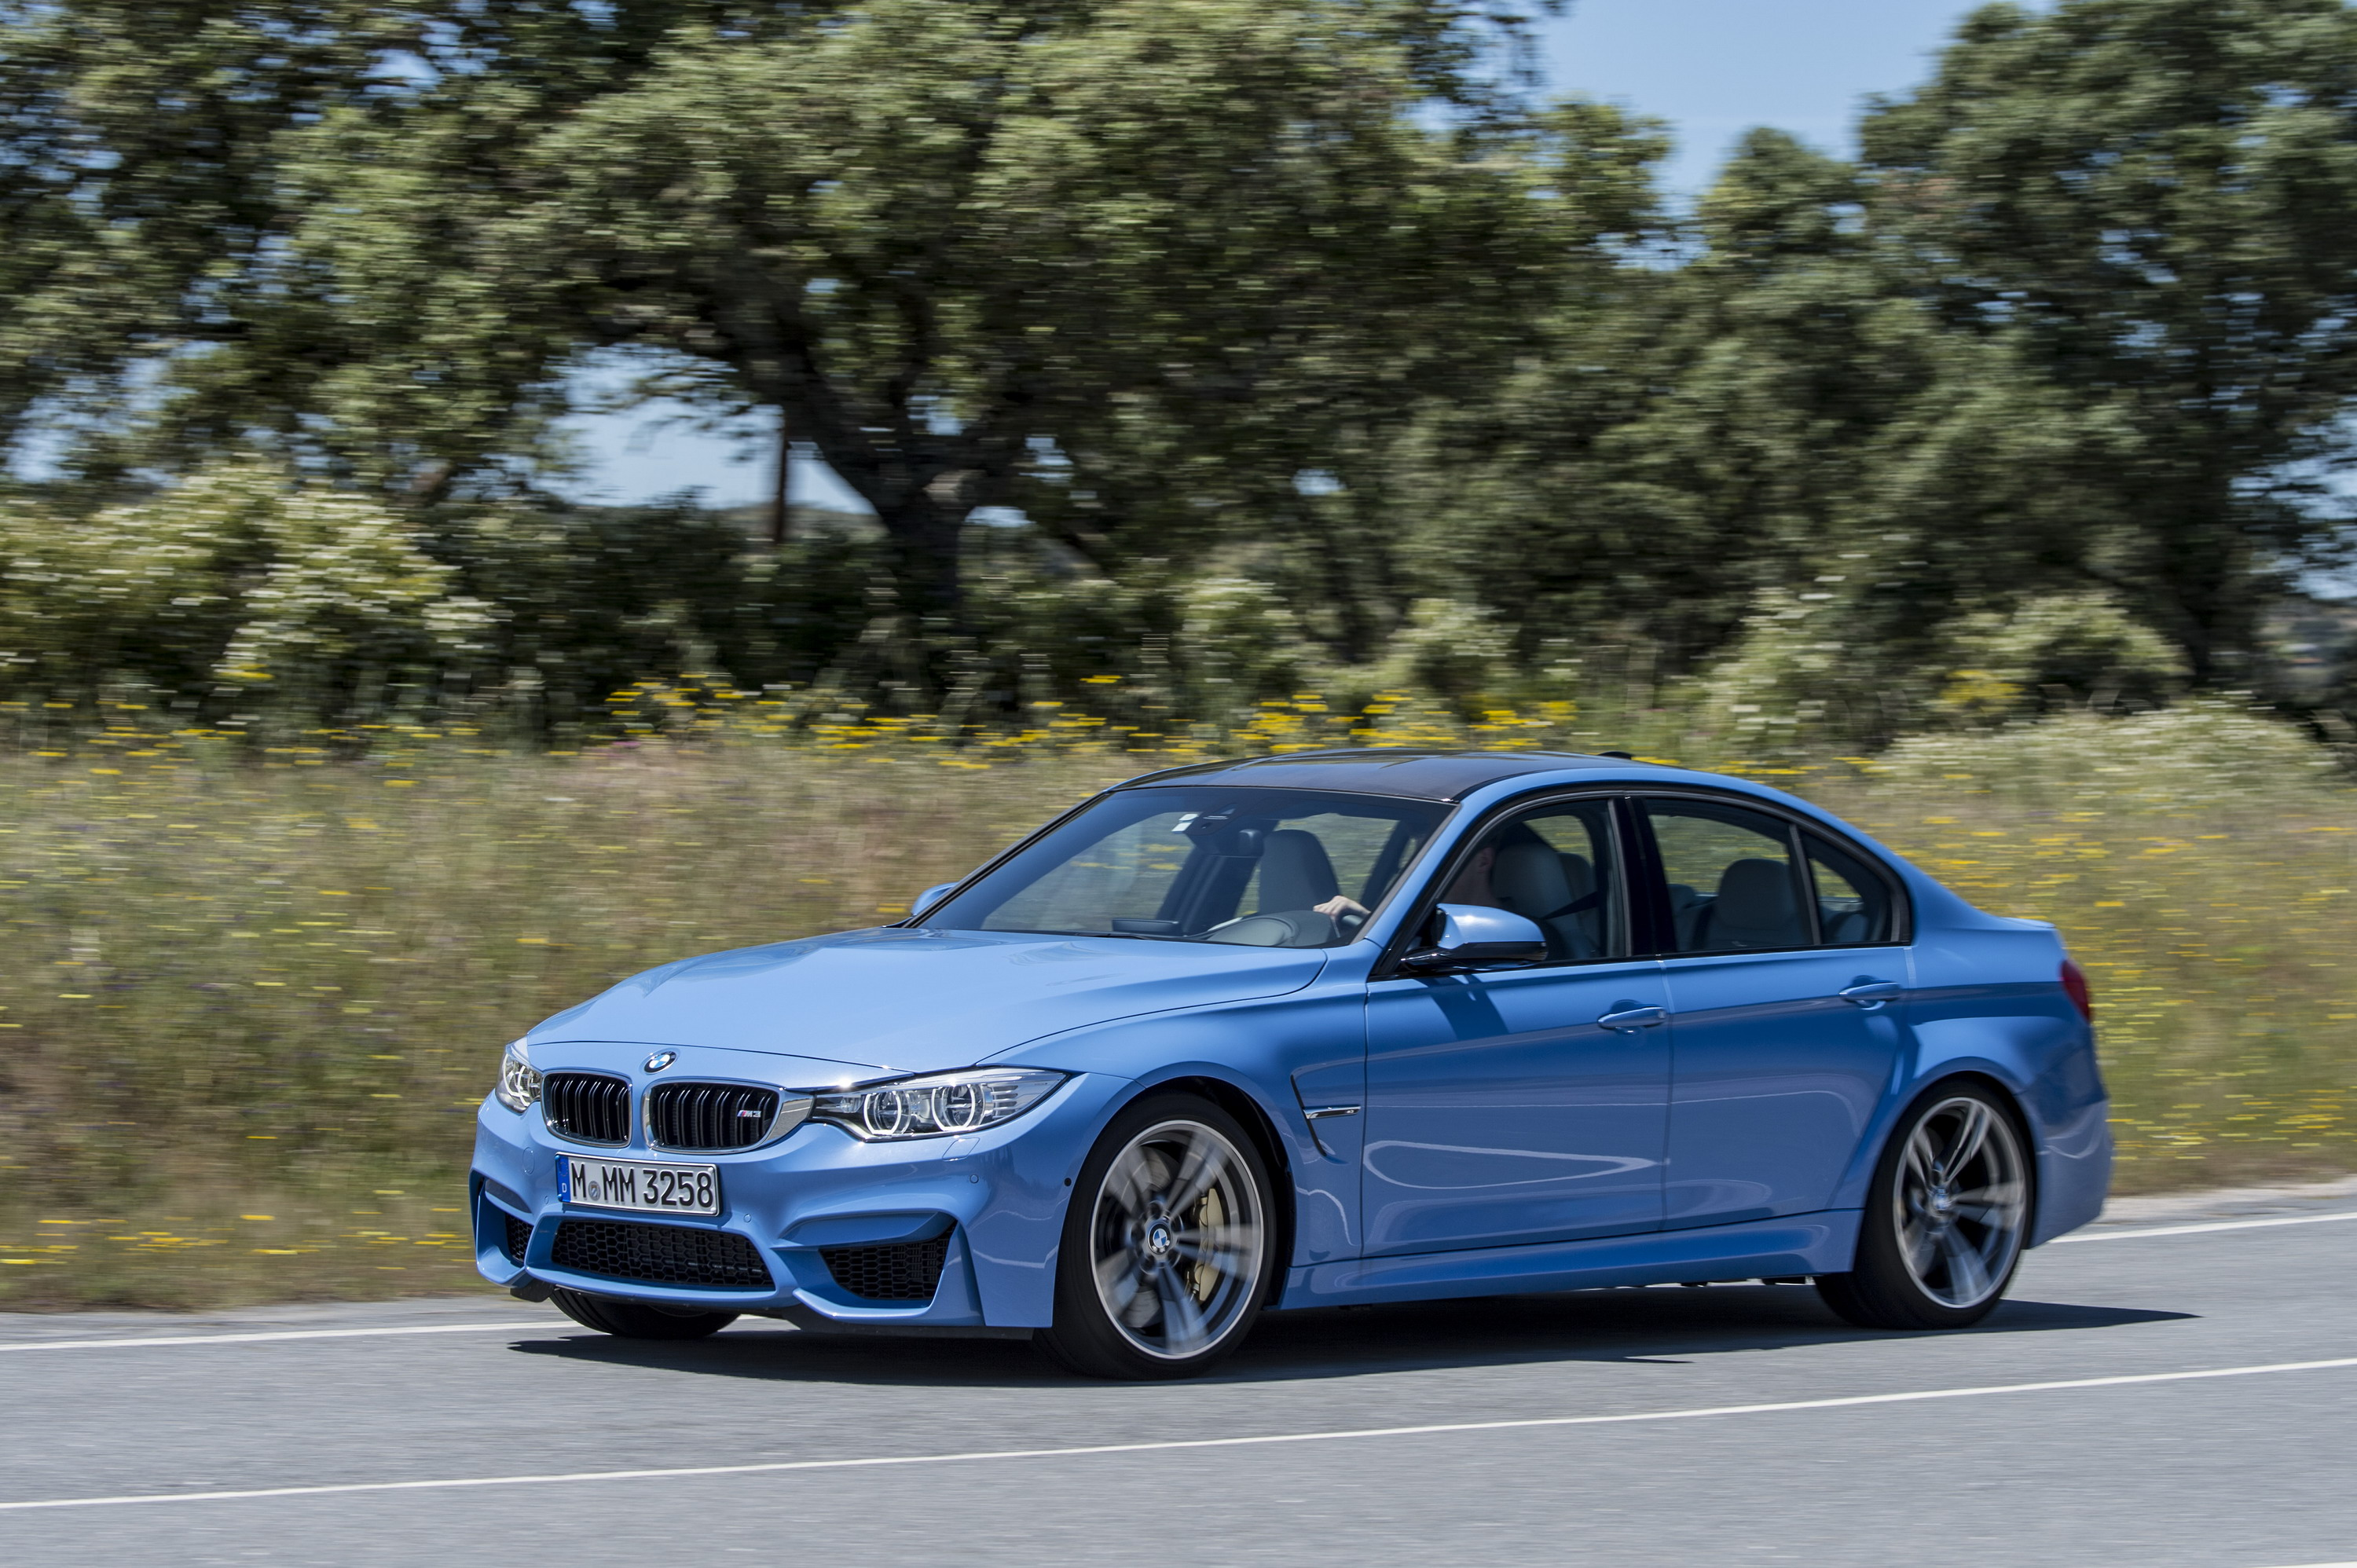 Bmw M3 Reviews Specs Prices Photos And Videos Top Speed 1989 Electrical Troubleshooting Manual